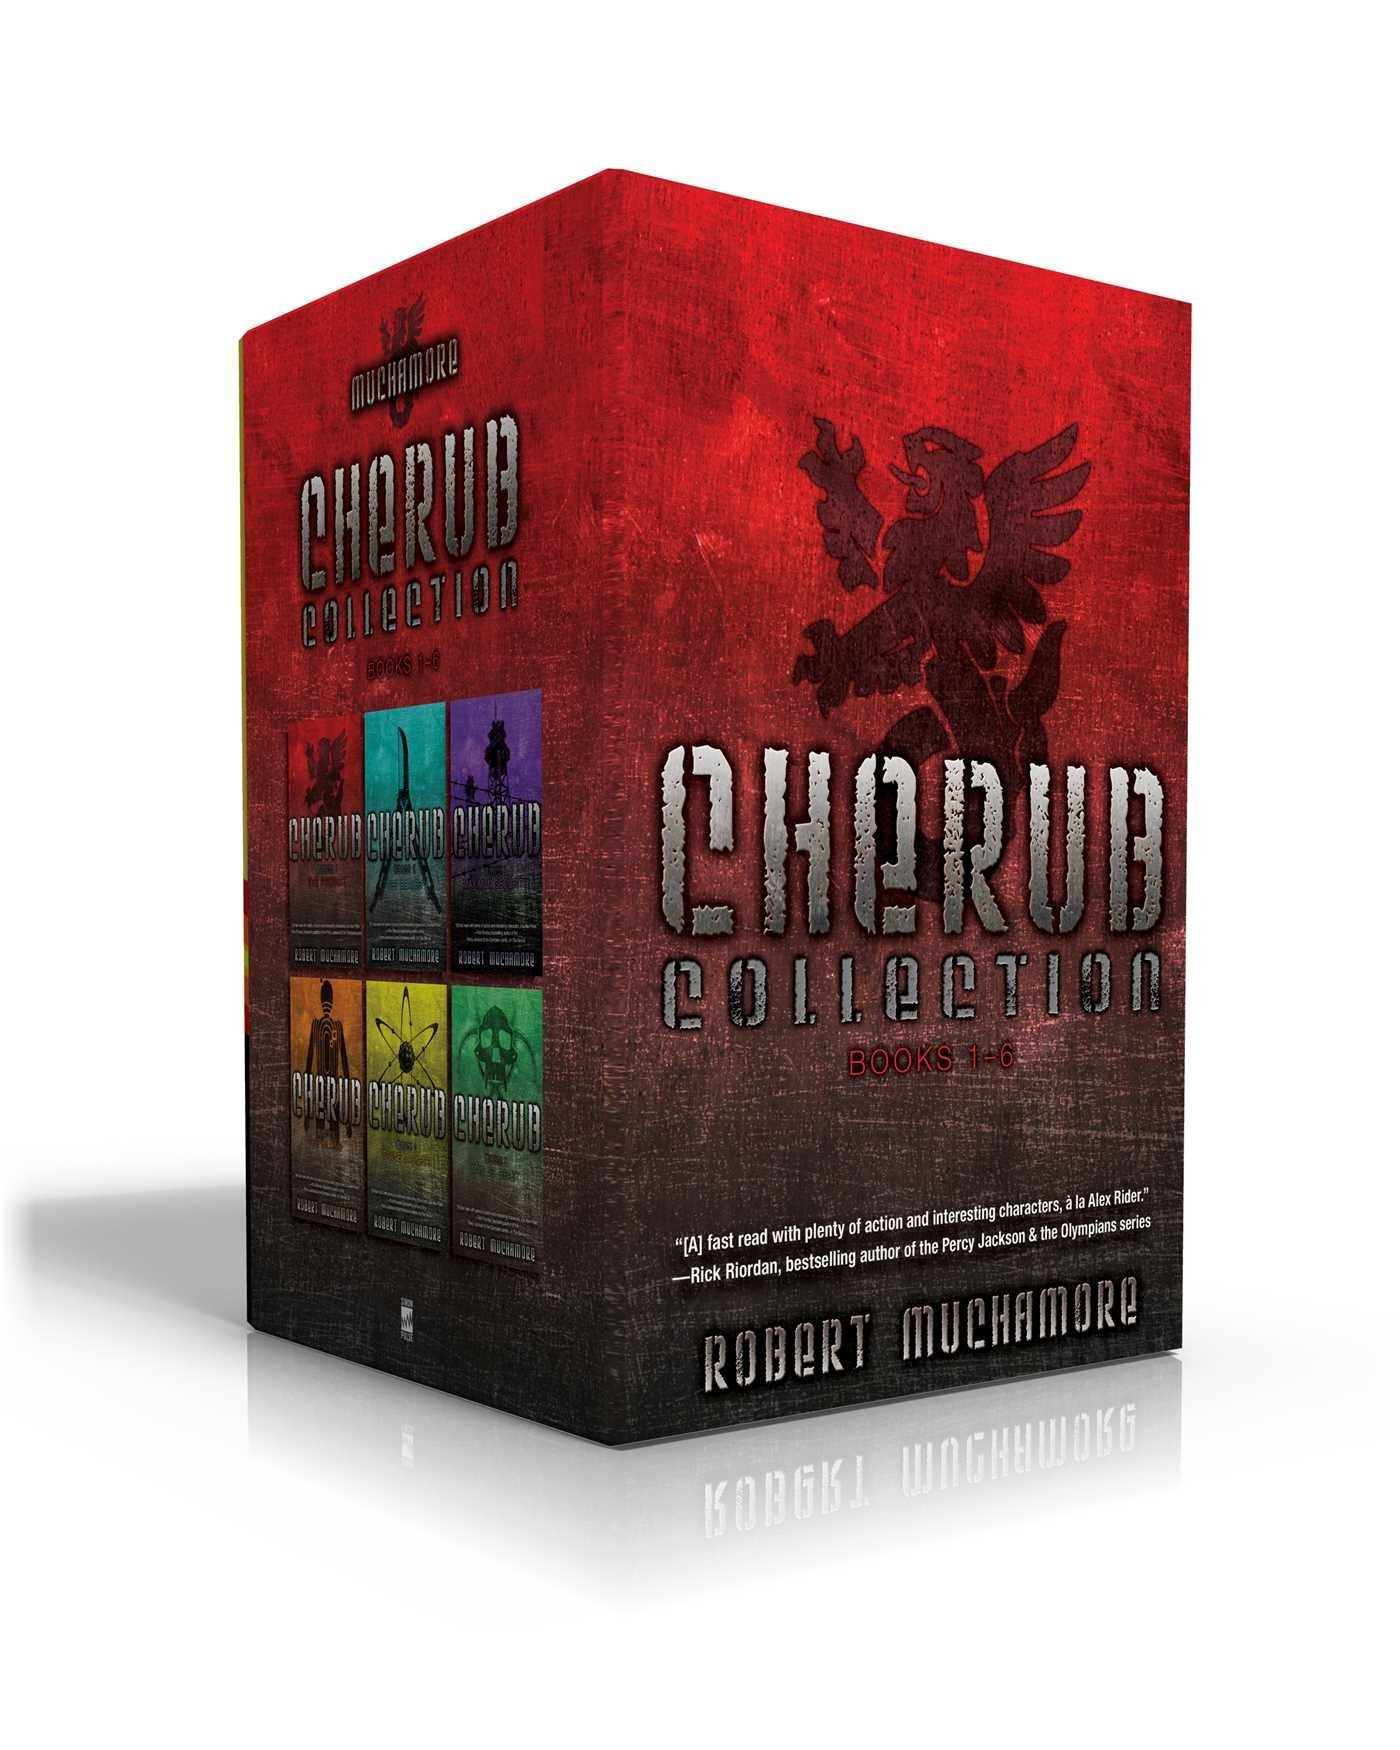 CHERUB Collection Books 1-6: The Recruit; The Dealer; Maximum Security; The Killing; Divine Madness; Man vs. Beast by Simon Pulse